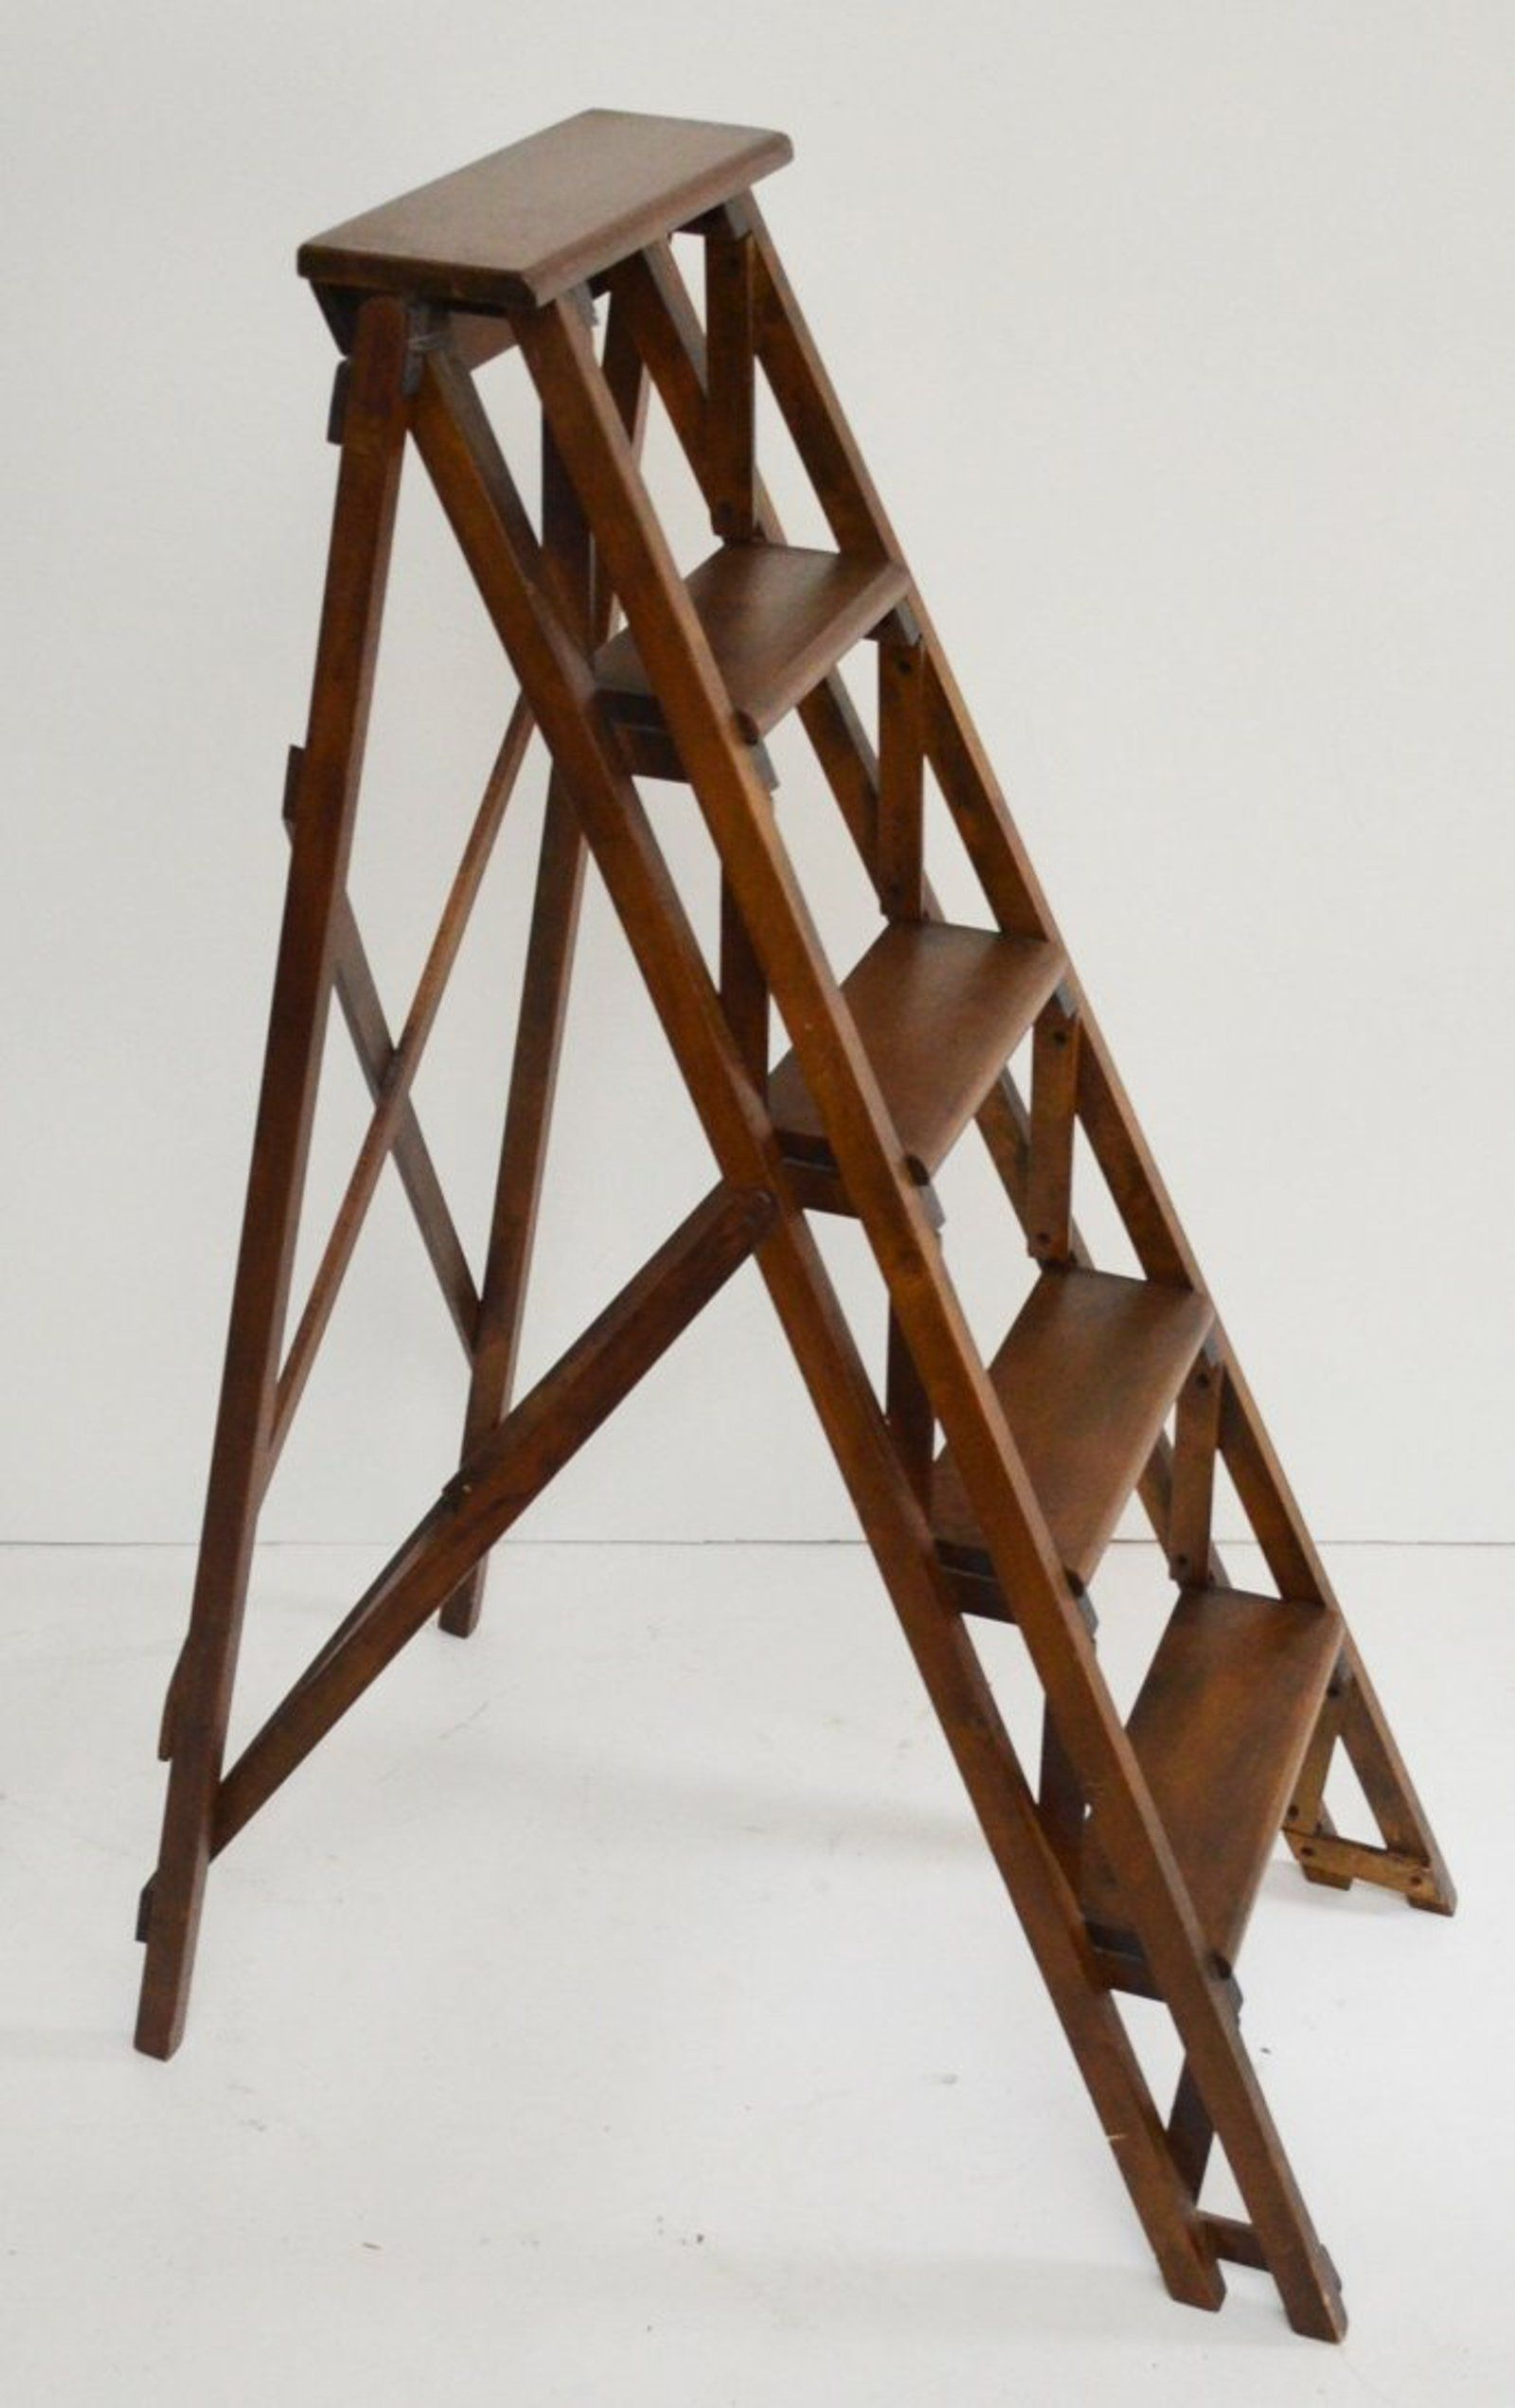 Vintage Wooden Folding Library Step Ladder Feb 20 2014 Applebrook Auctions Estate Sales In Ct Step Ladders Wooden Ladder Wood Ladder